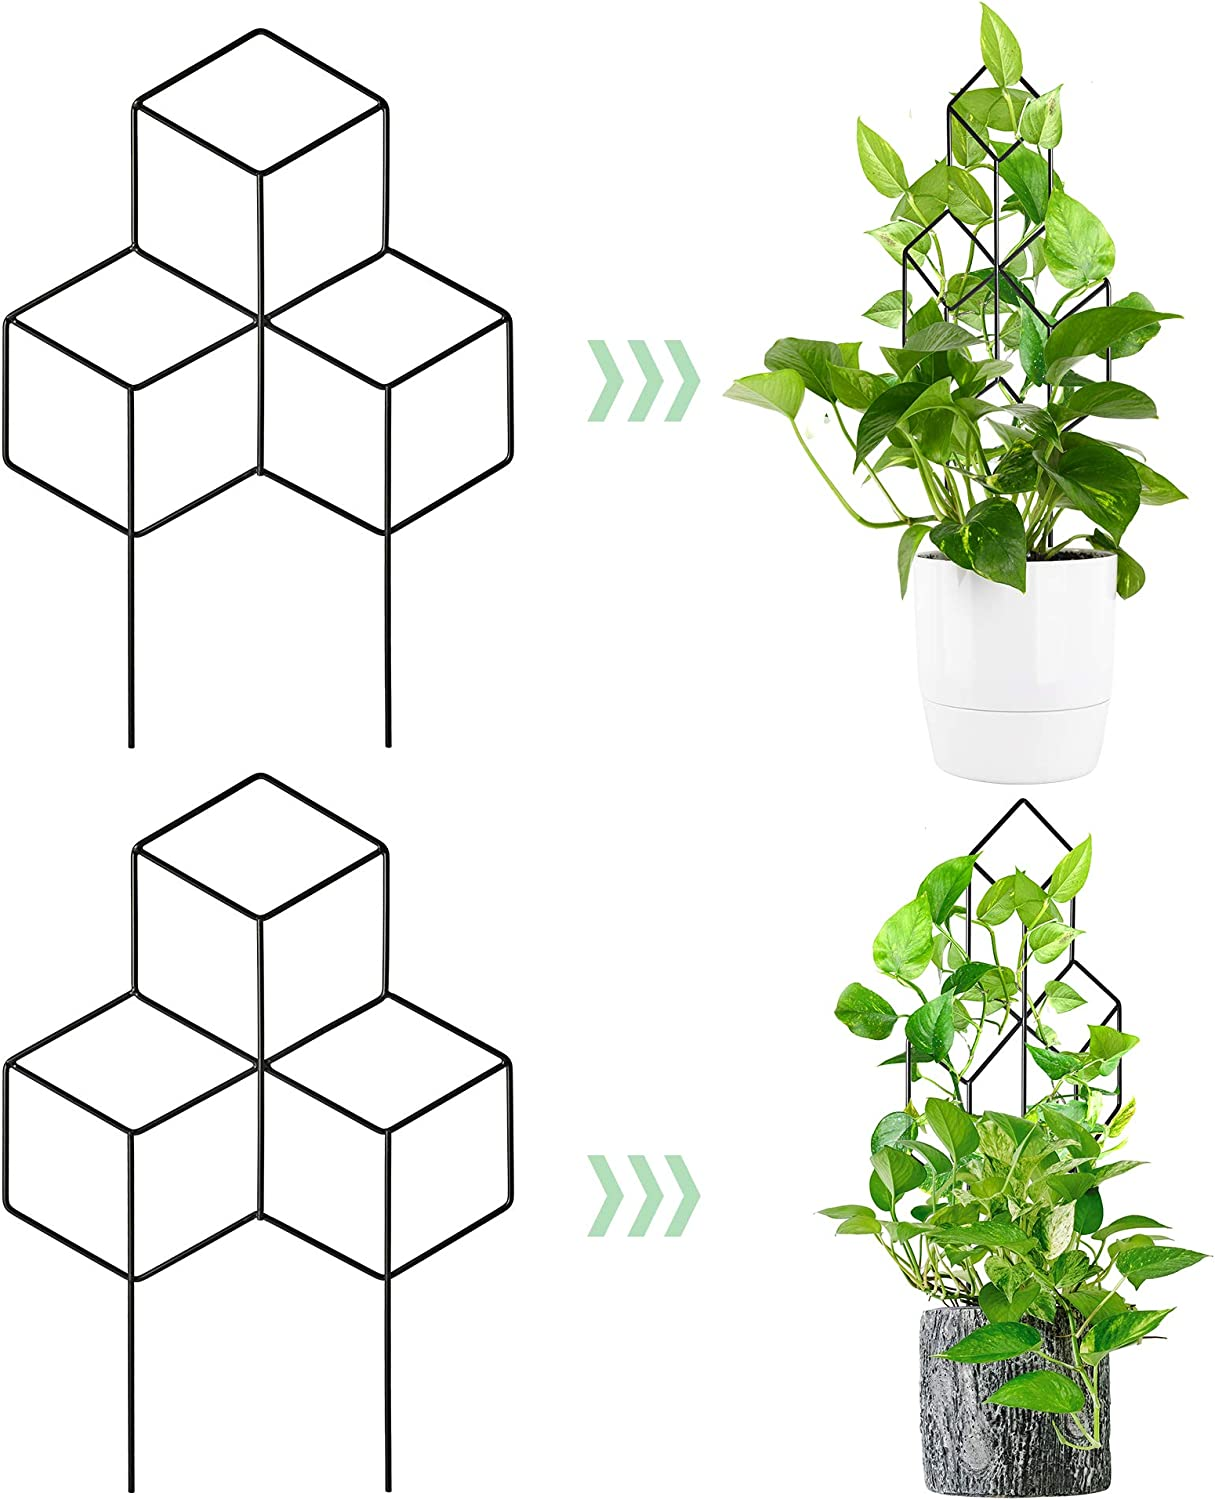 Newtion 2 Pack Garden Metal Trellis, Lattice-Shaped Plant Support Trellis for Indoor Outdoor DIY Mini Climbing Plants, Potted Plants, Flowers Vegetables Rose Vine Pea Ivy Cucumbers, Black Coated